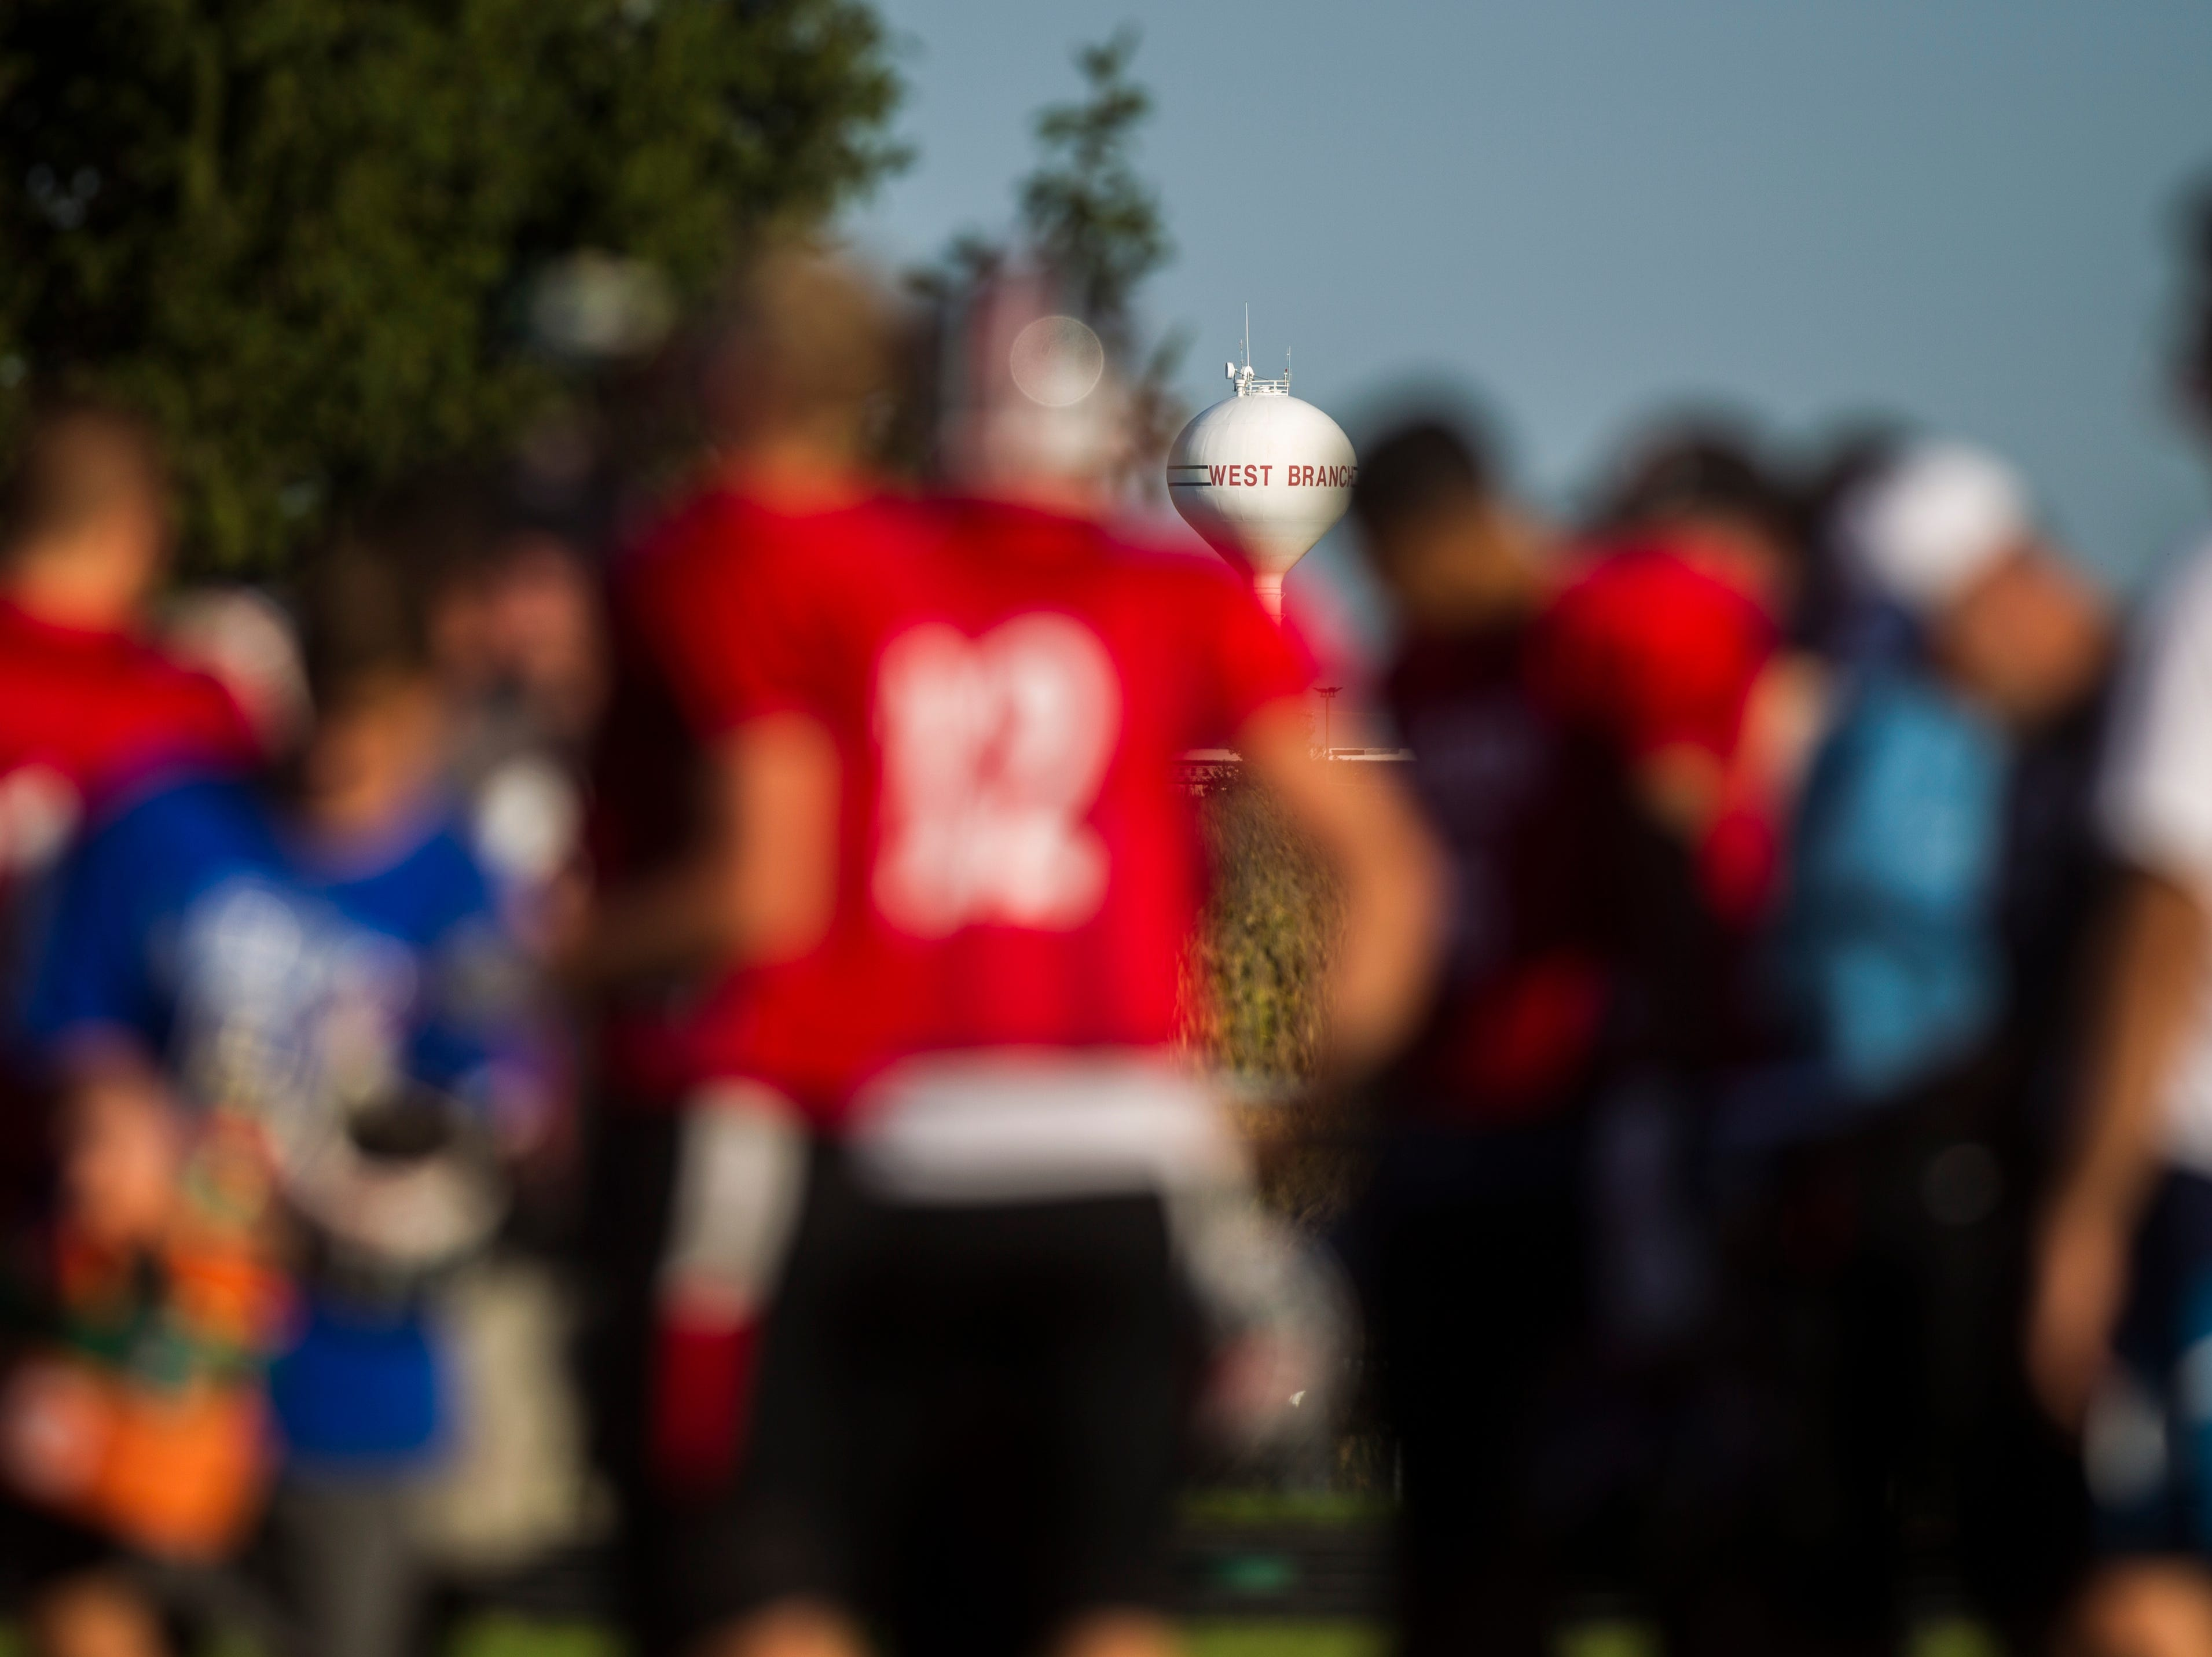 A West Branch water tower along Interstate 80 is seen between players during a varsity football practice on Tuesday, Sept. 11, 2018, at the West Branch High School practice field.